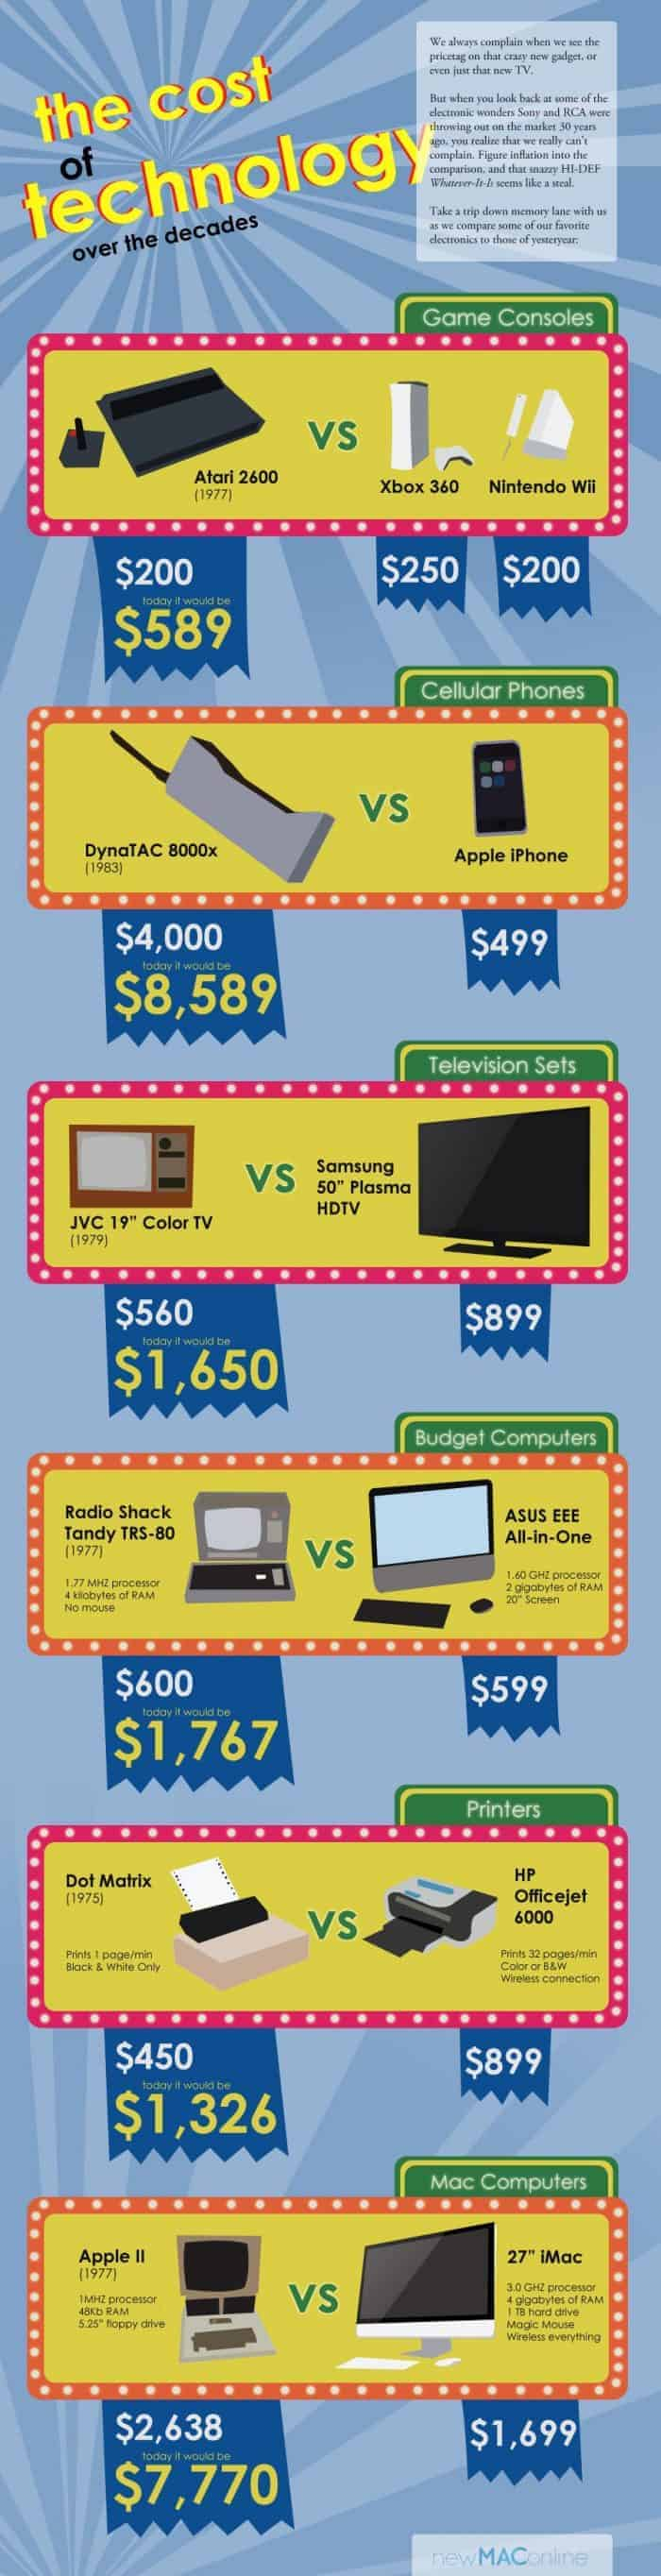 Cost of Technology Over The Decades Infographic